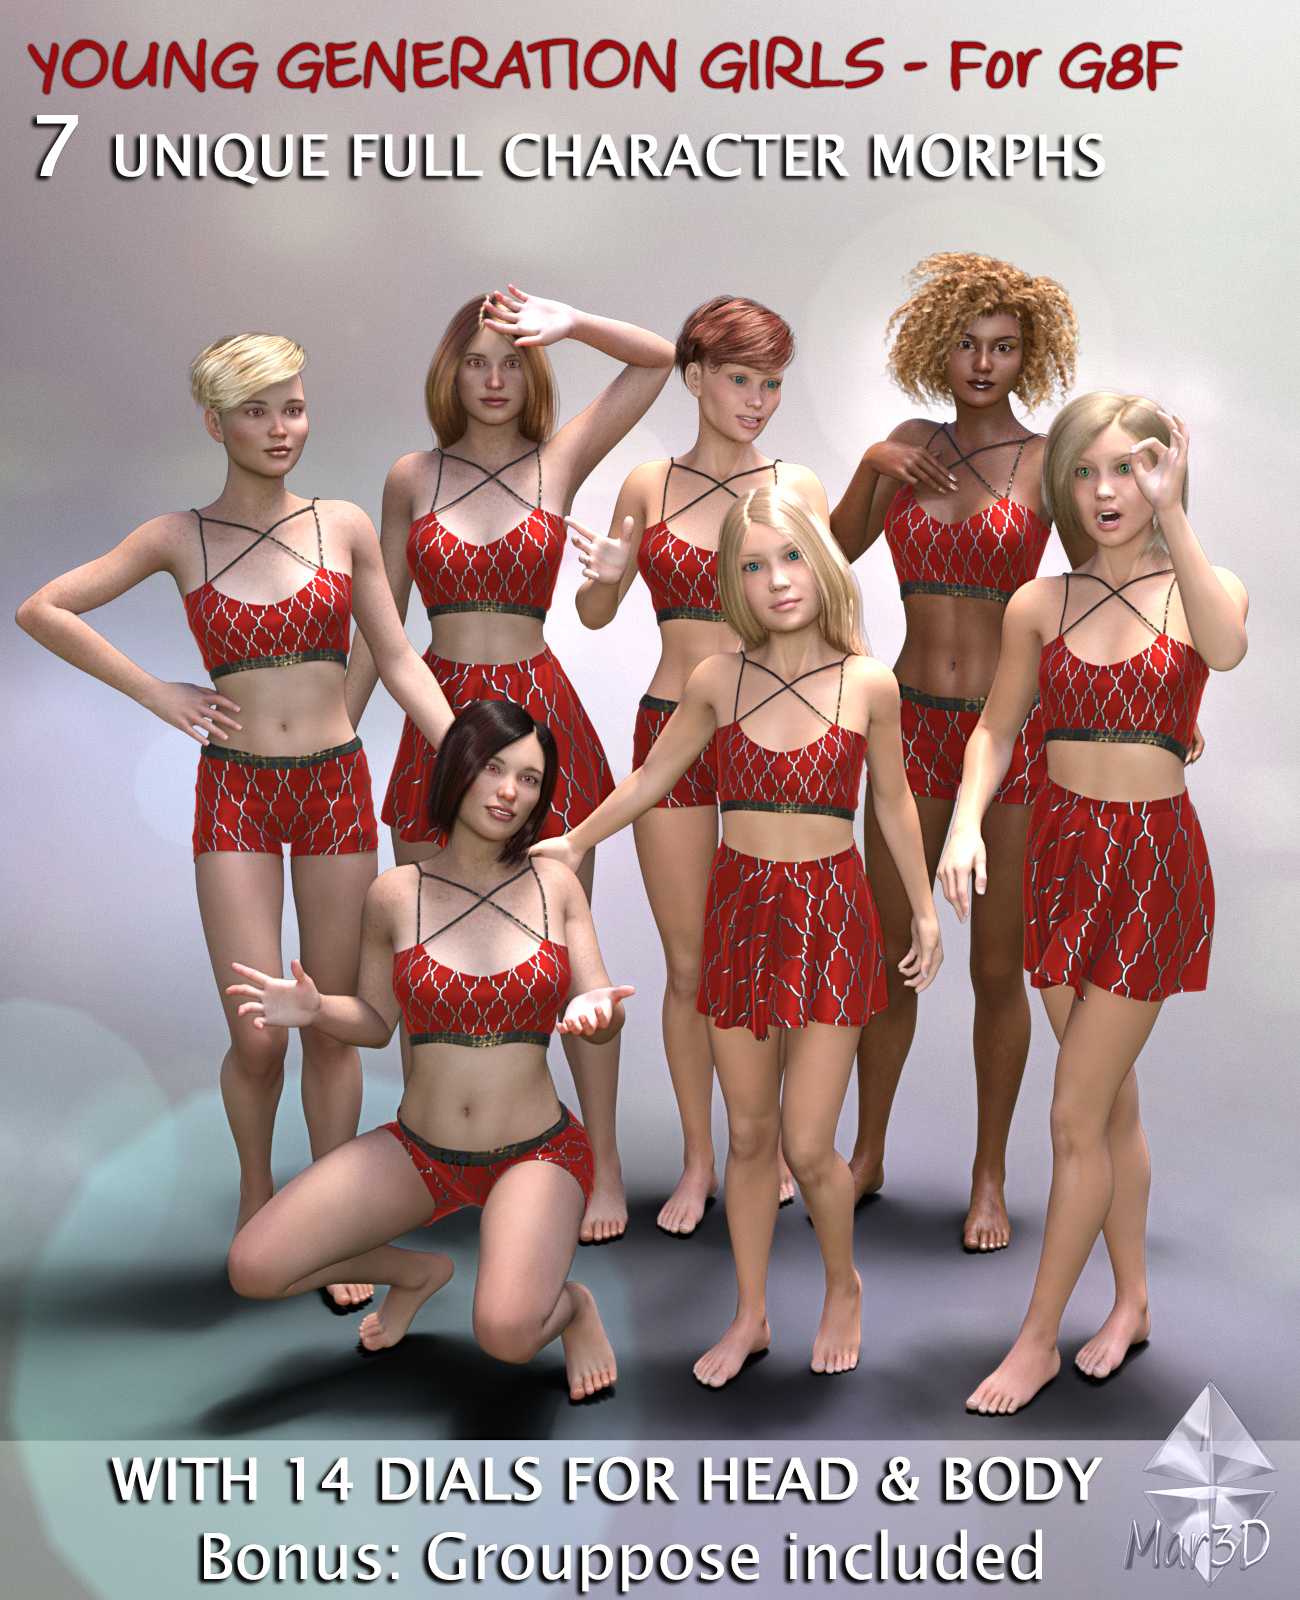 Young Generation Girls G8F  Full Custom Character Morphs